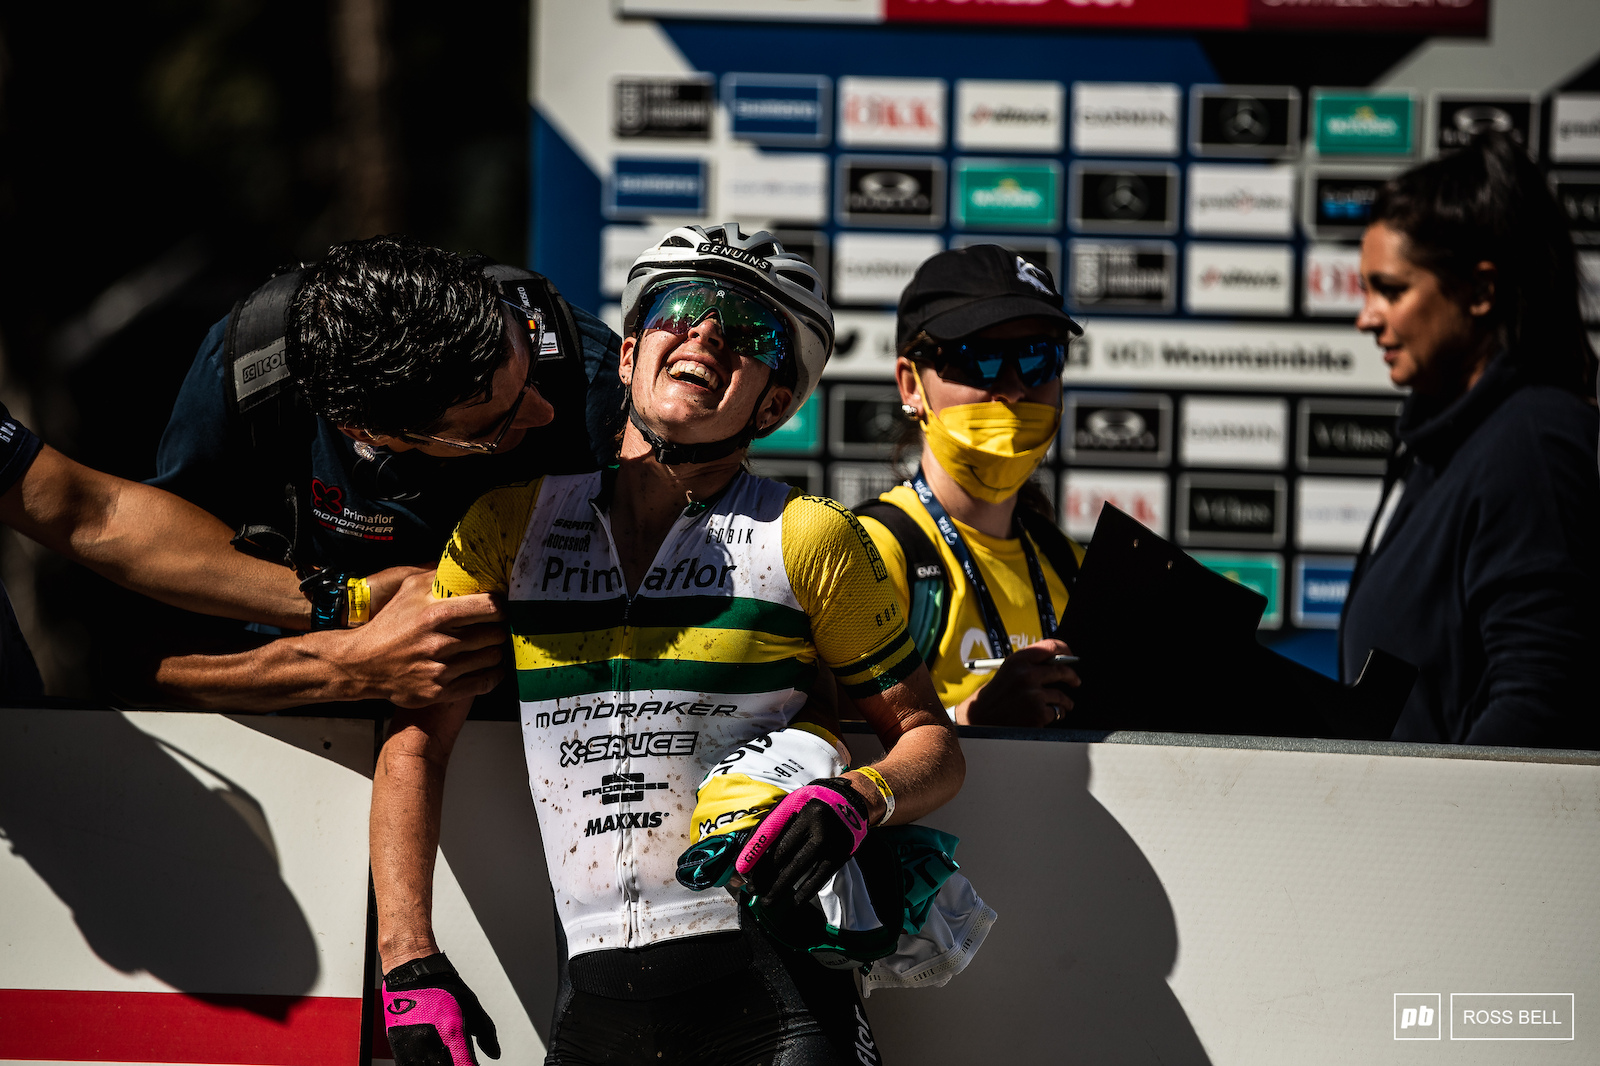 Rebecca McConnell exhausted and ecstatic as she rode into second place.